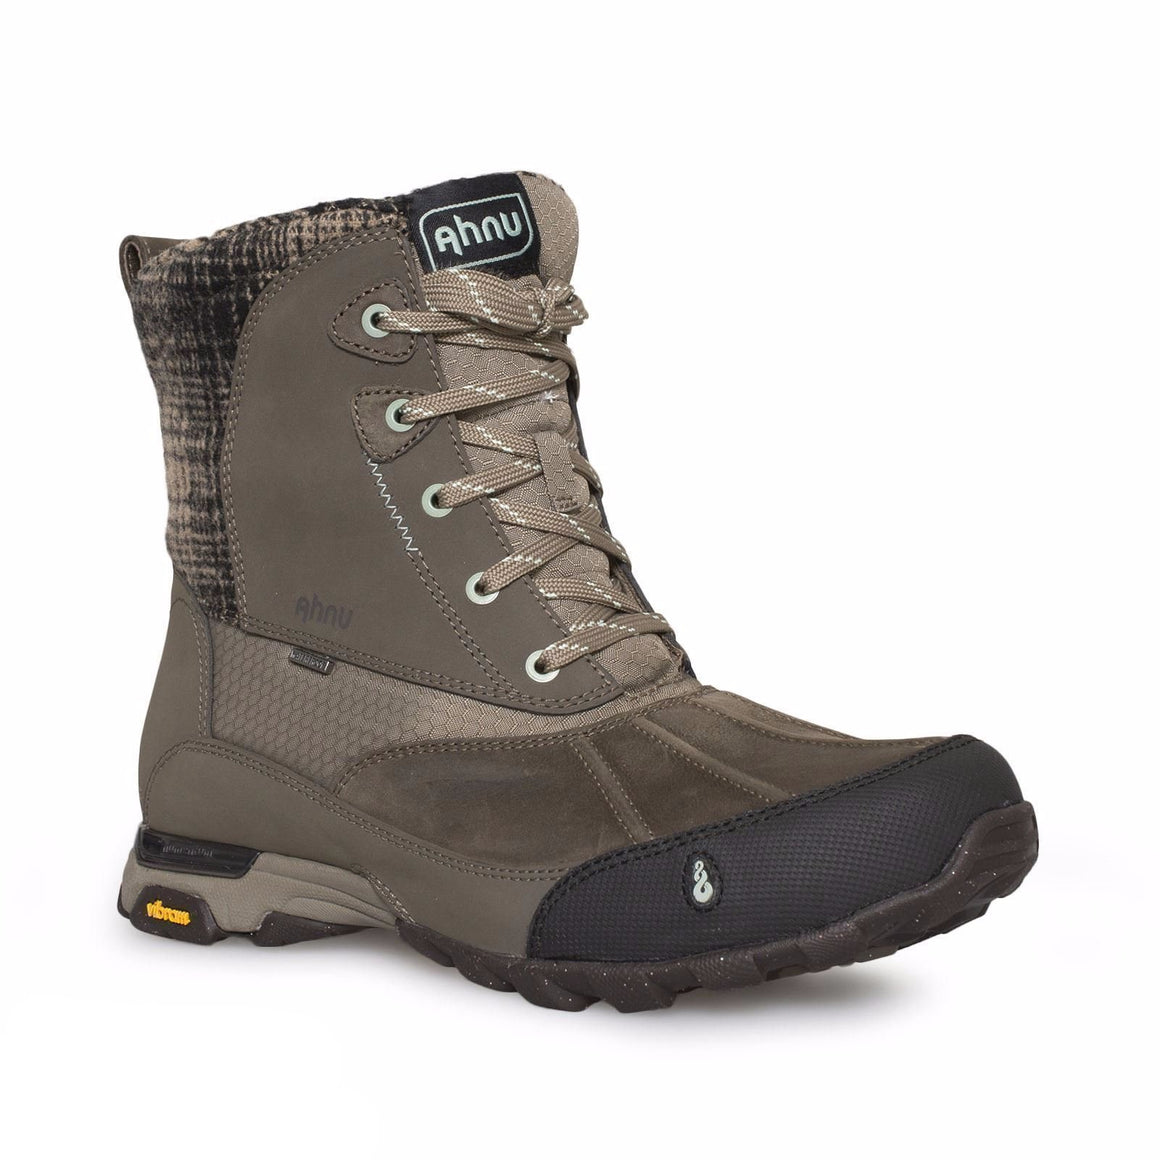 AHNU SUGAR PEAK WP ALDER BARK HIKING BOOTS